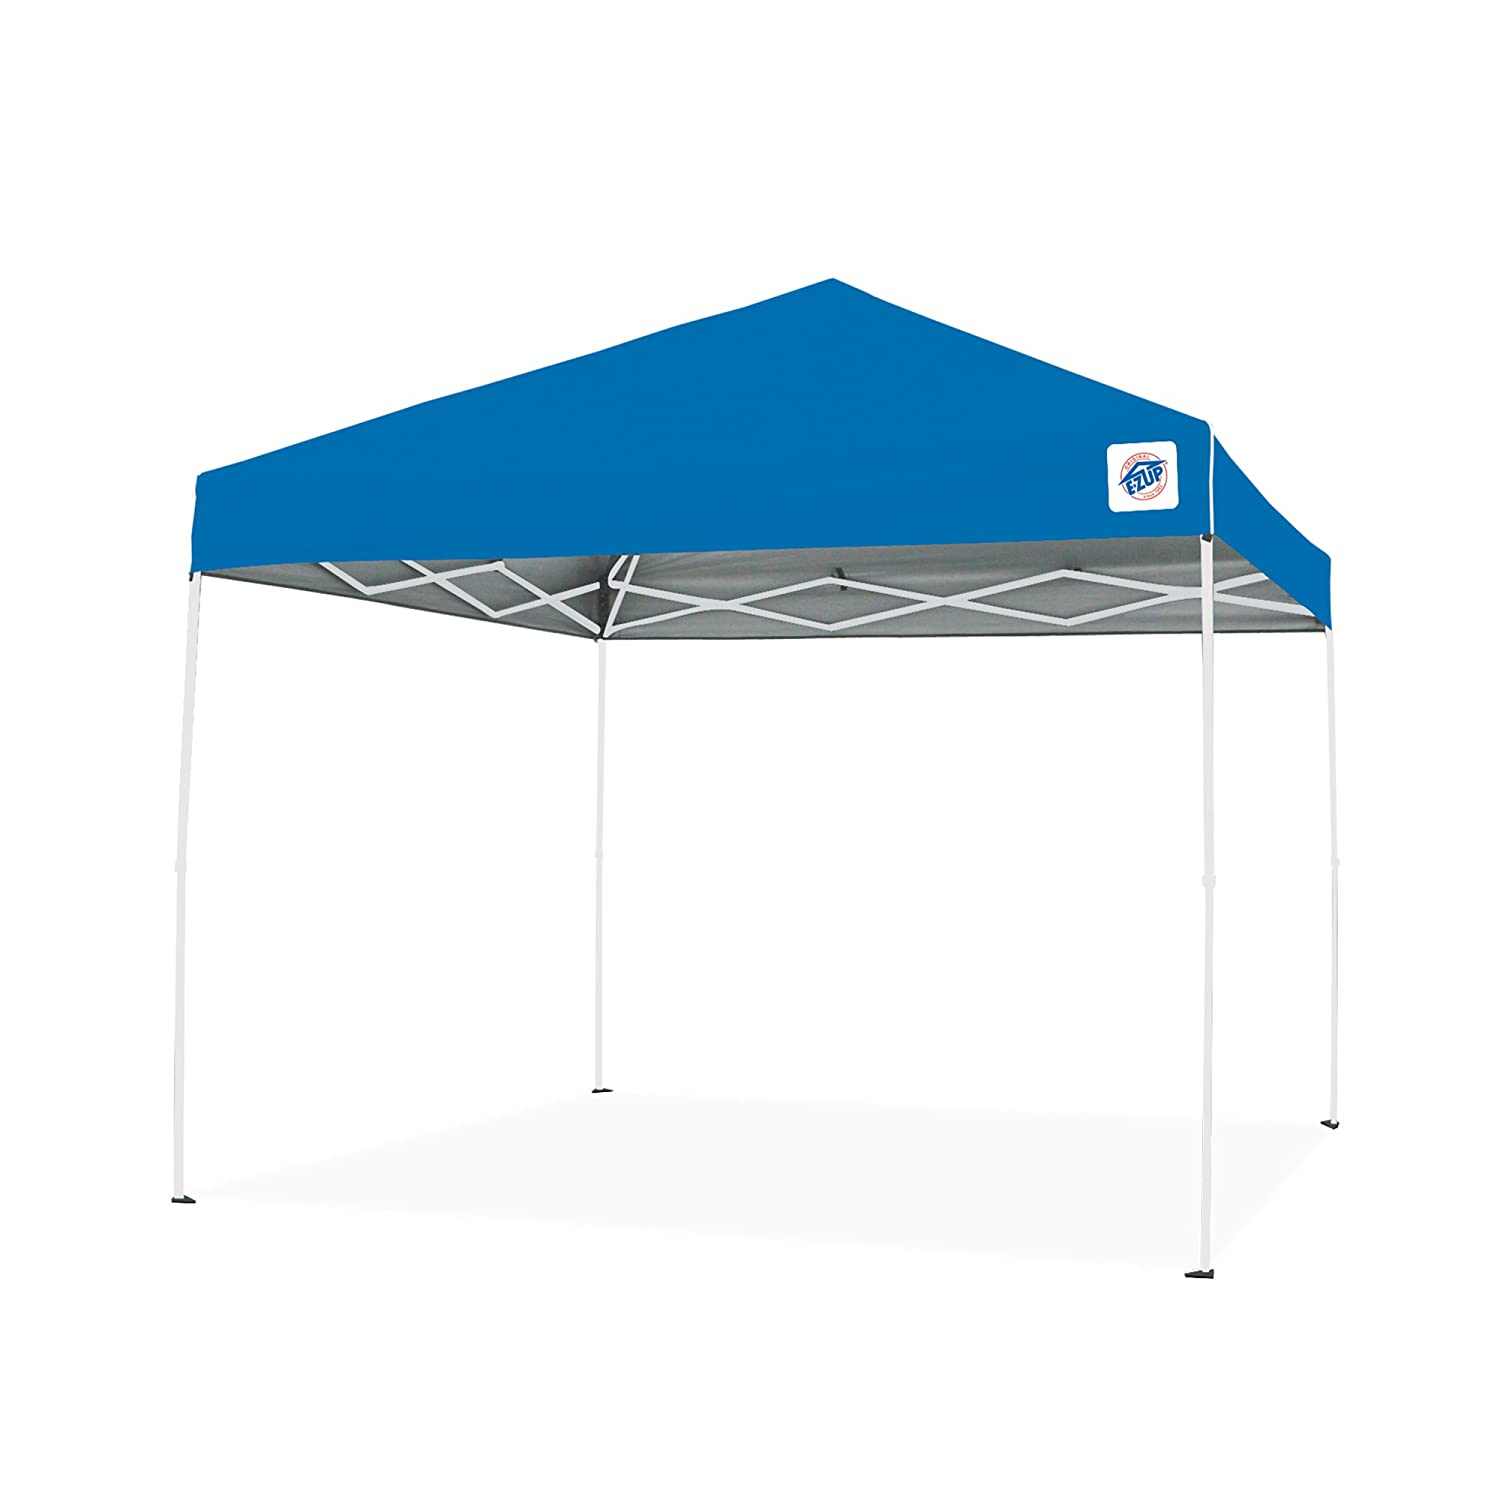 Amazon.com  E-Z UP Envoy Instant Shelter Canopy 10 by 10u0027 Blue  Garden u0026 Outdoor  sc 1 st  Amazon.com : easy ups tents - memphite.com